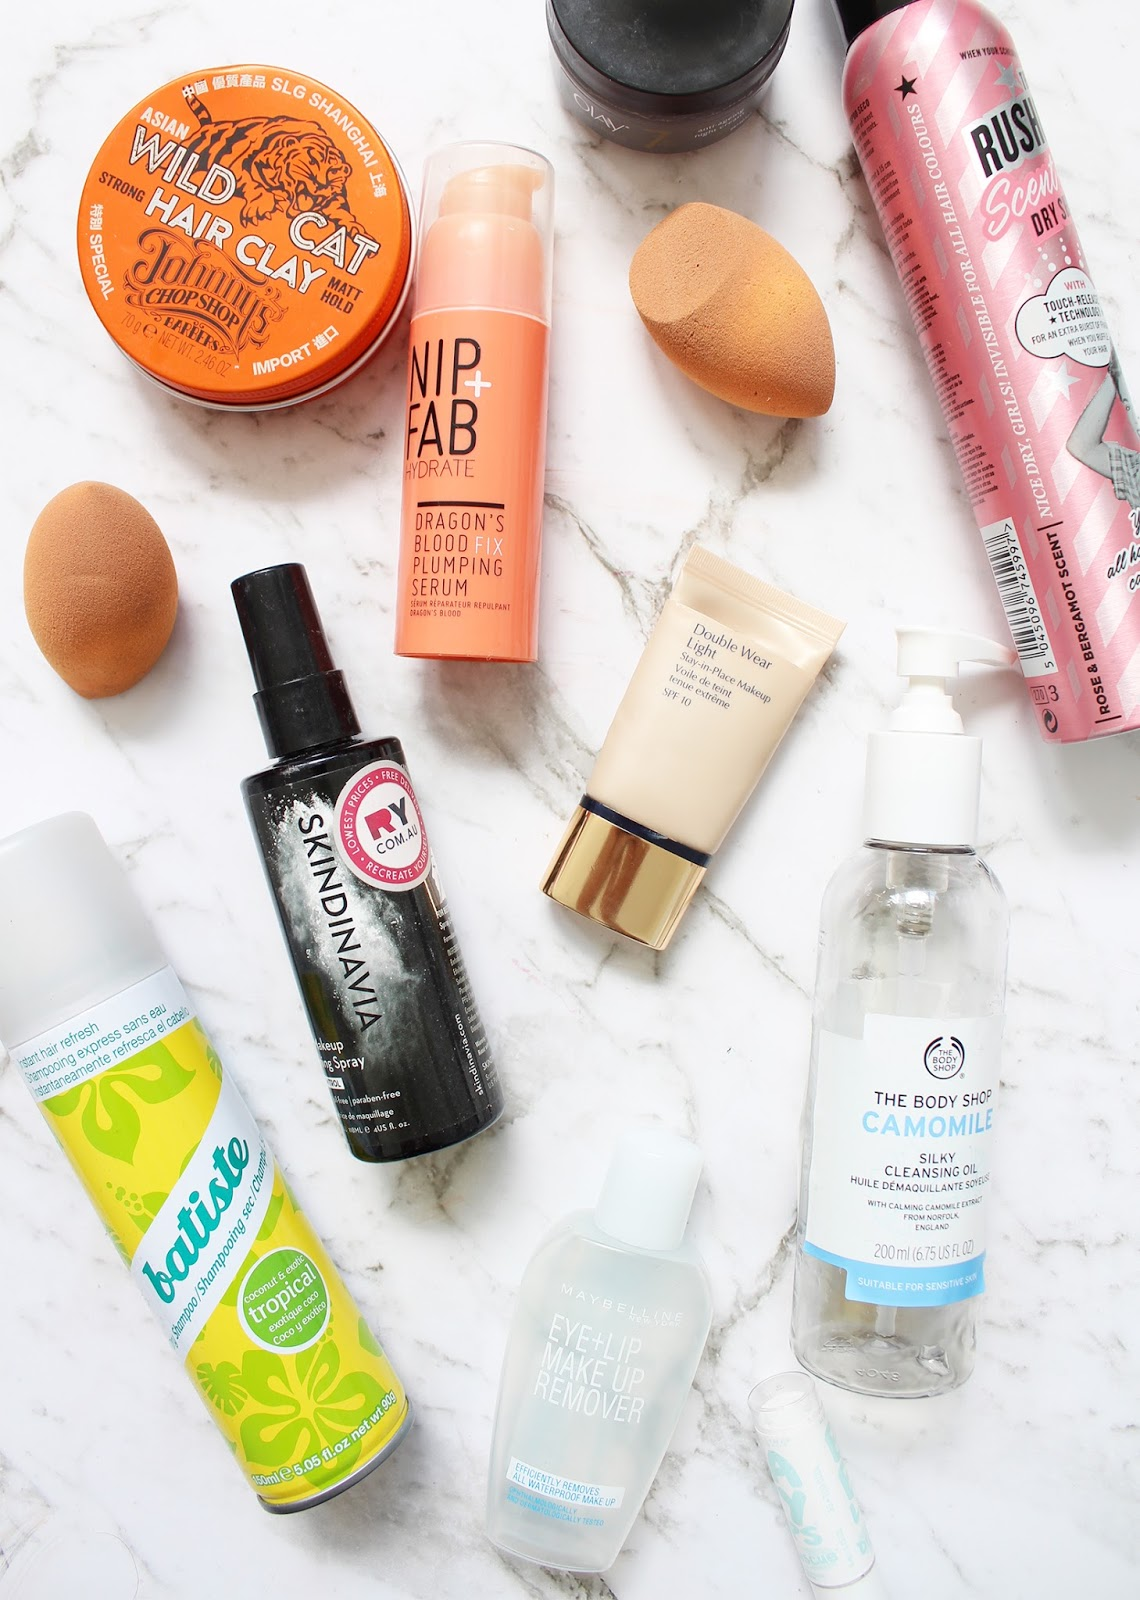 EMPTIES | February '18 - Soap + Glory, The Body Shop, Esteé Lauder + More - CassandraMyee